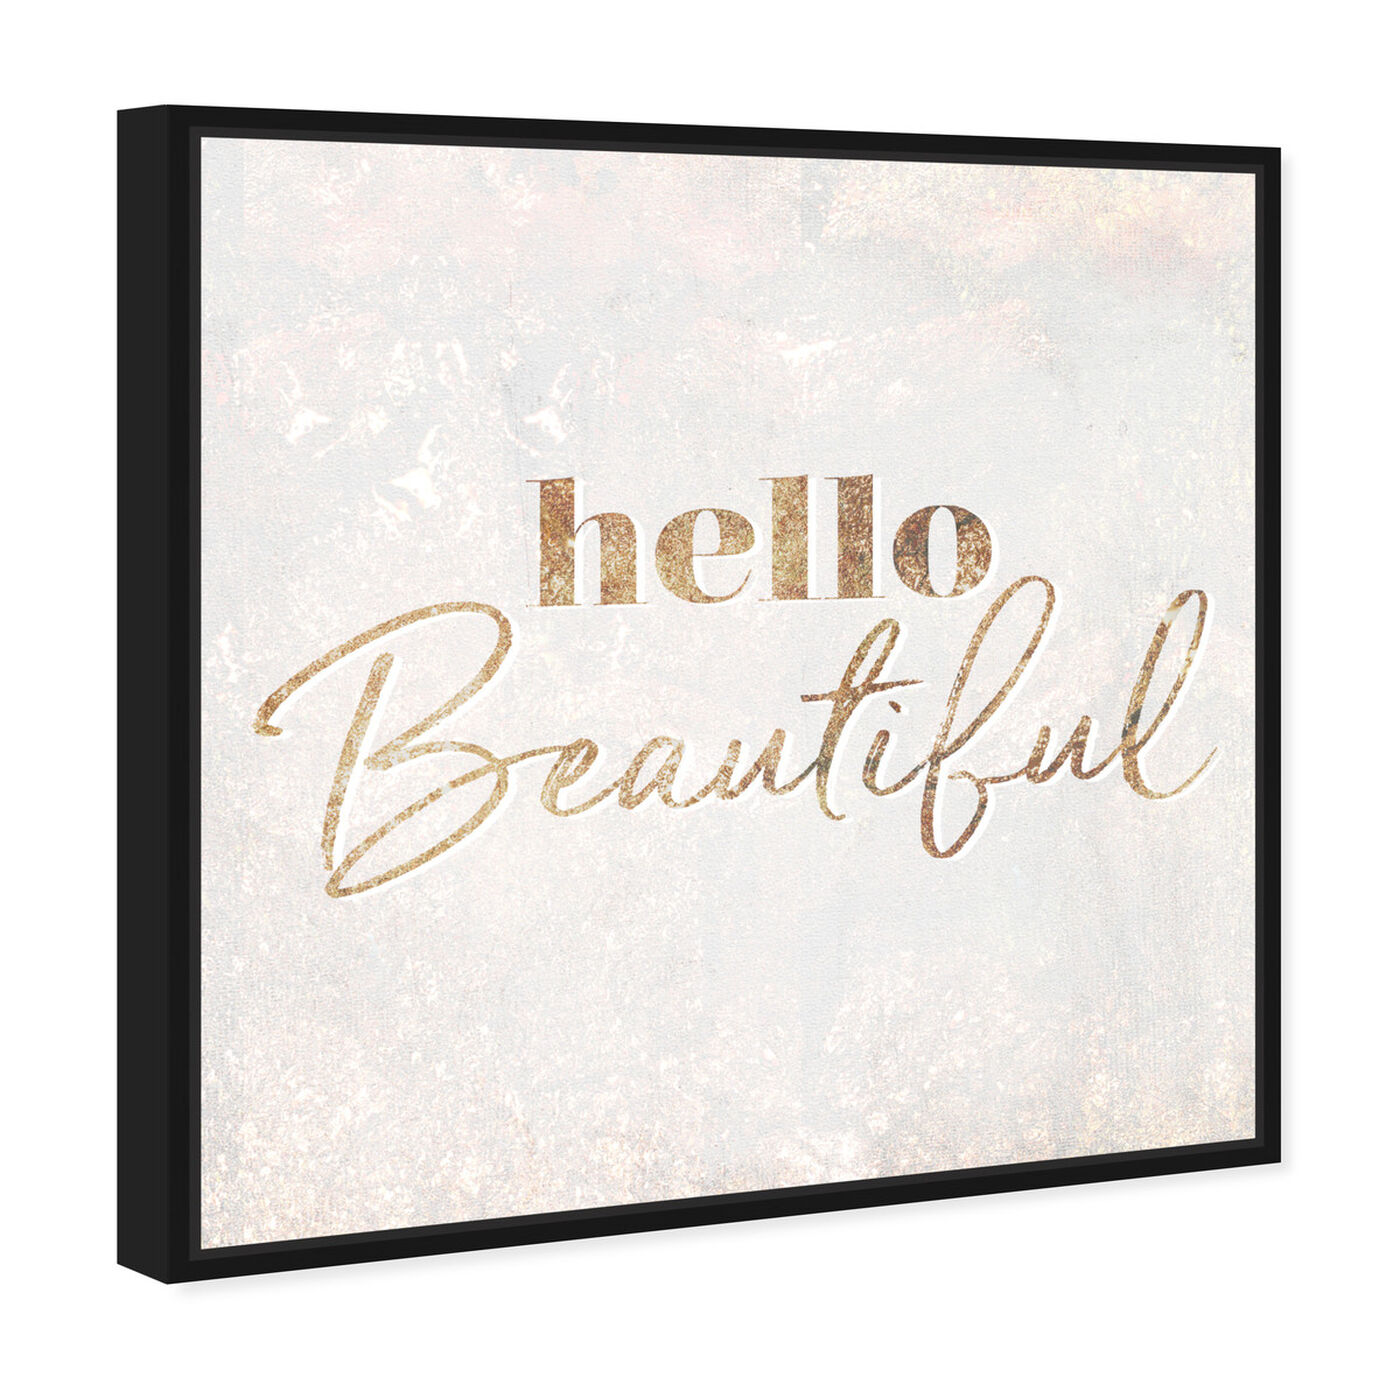 Angled view of Hello Beautiful Champagne featuring typography and quotes and beauty quotes and sayings art.